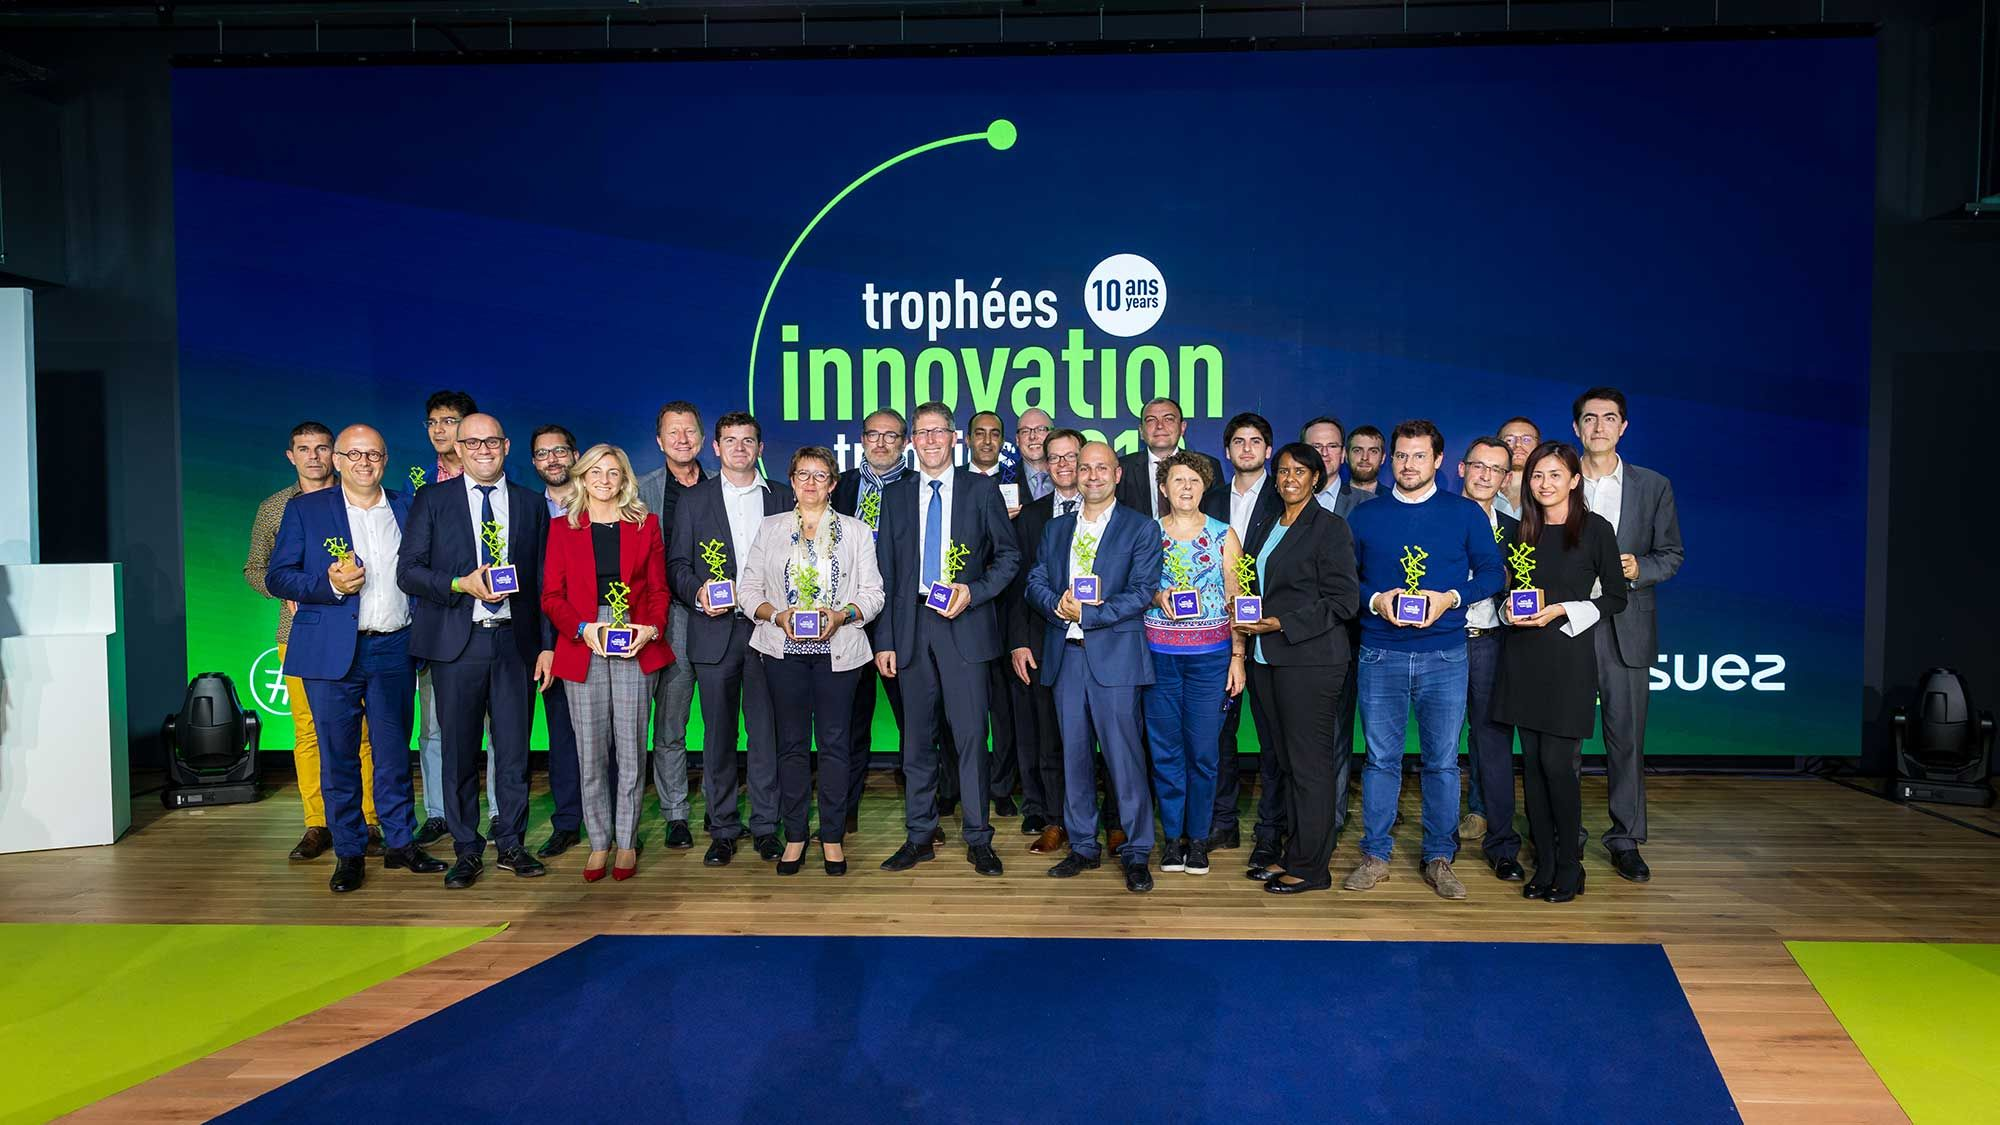 SUEZ Trophees innovation 2018